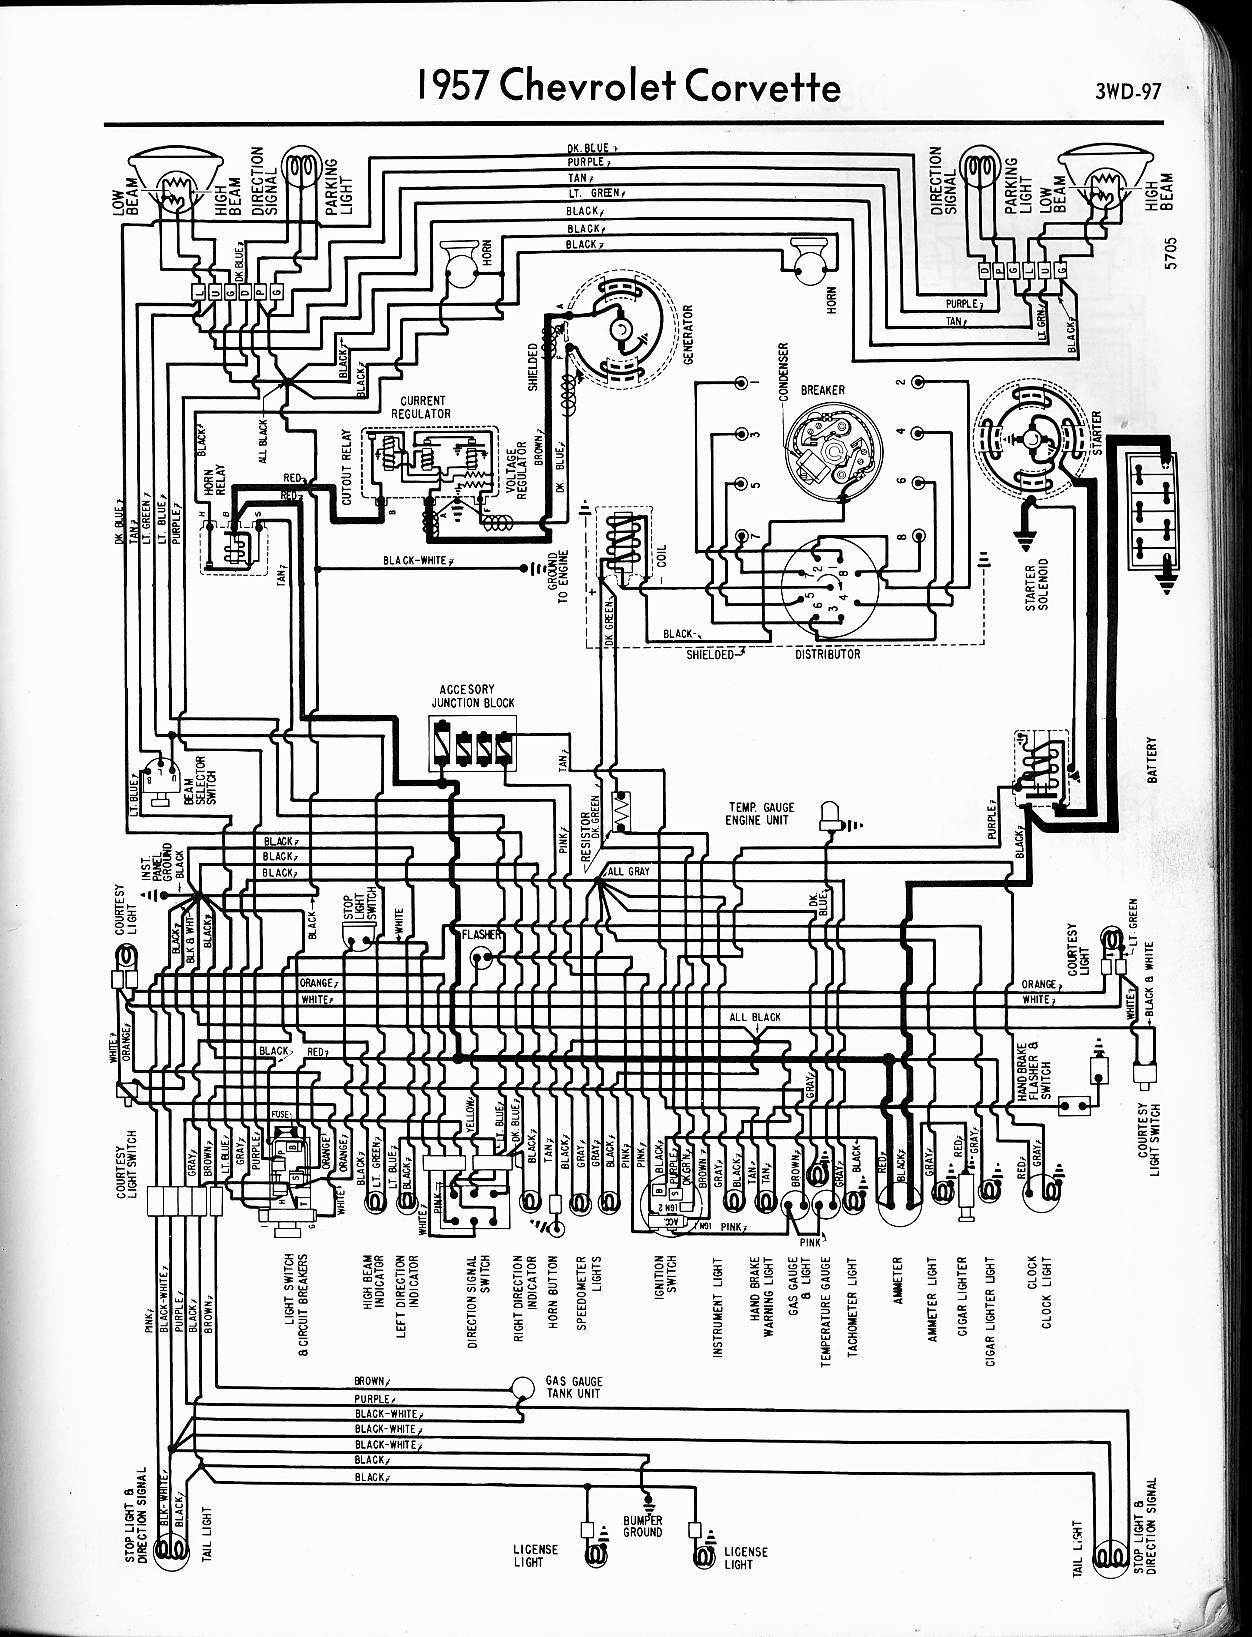 MWireChev57_3WD 097 57 65 chevy wiring diagrams 1956 Chevy Convertible at crackthecode.co